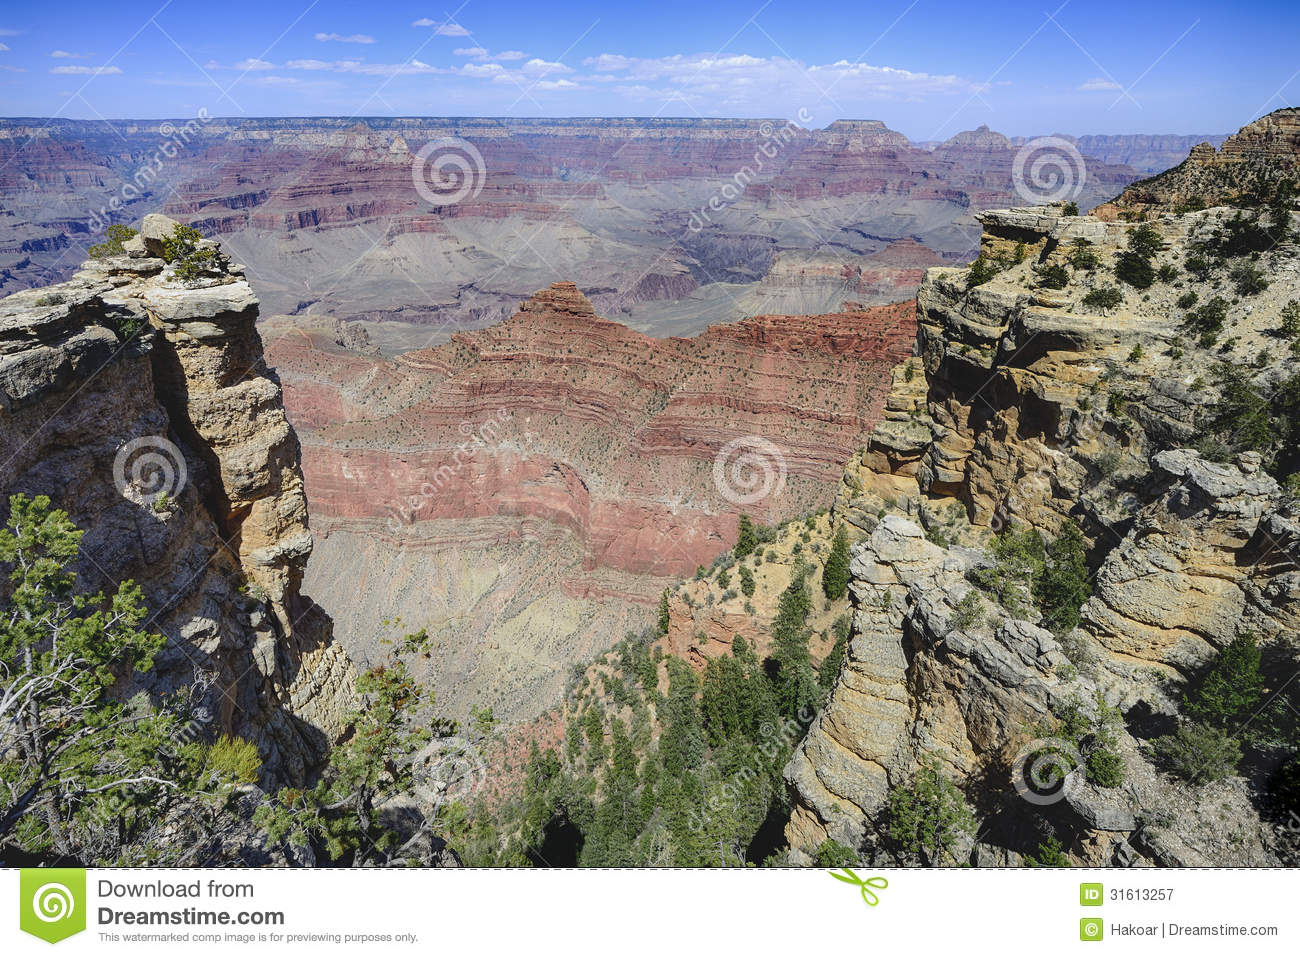 Grand canyon az royalty free stock photography image for How to get free land in usa